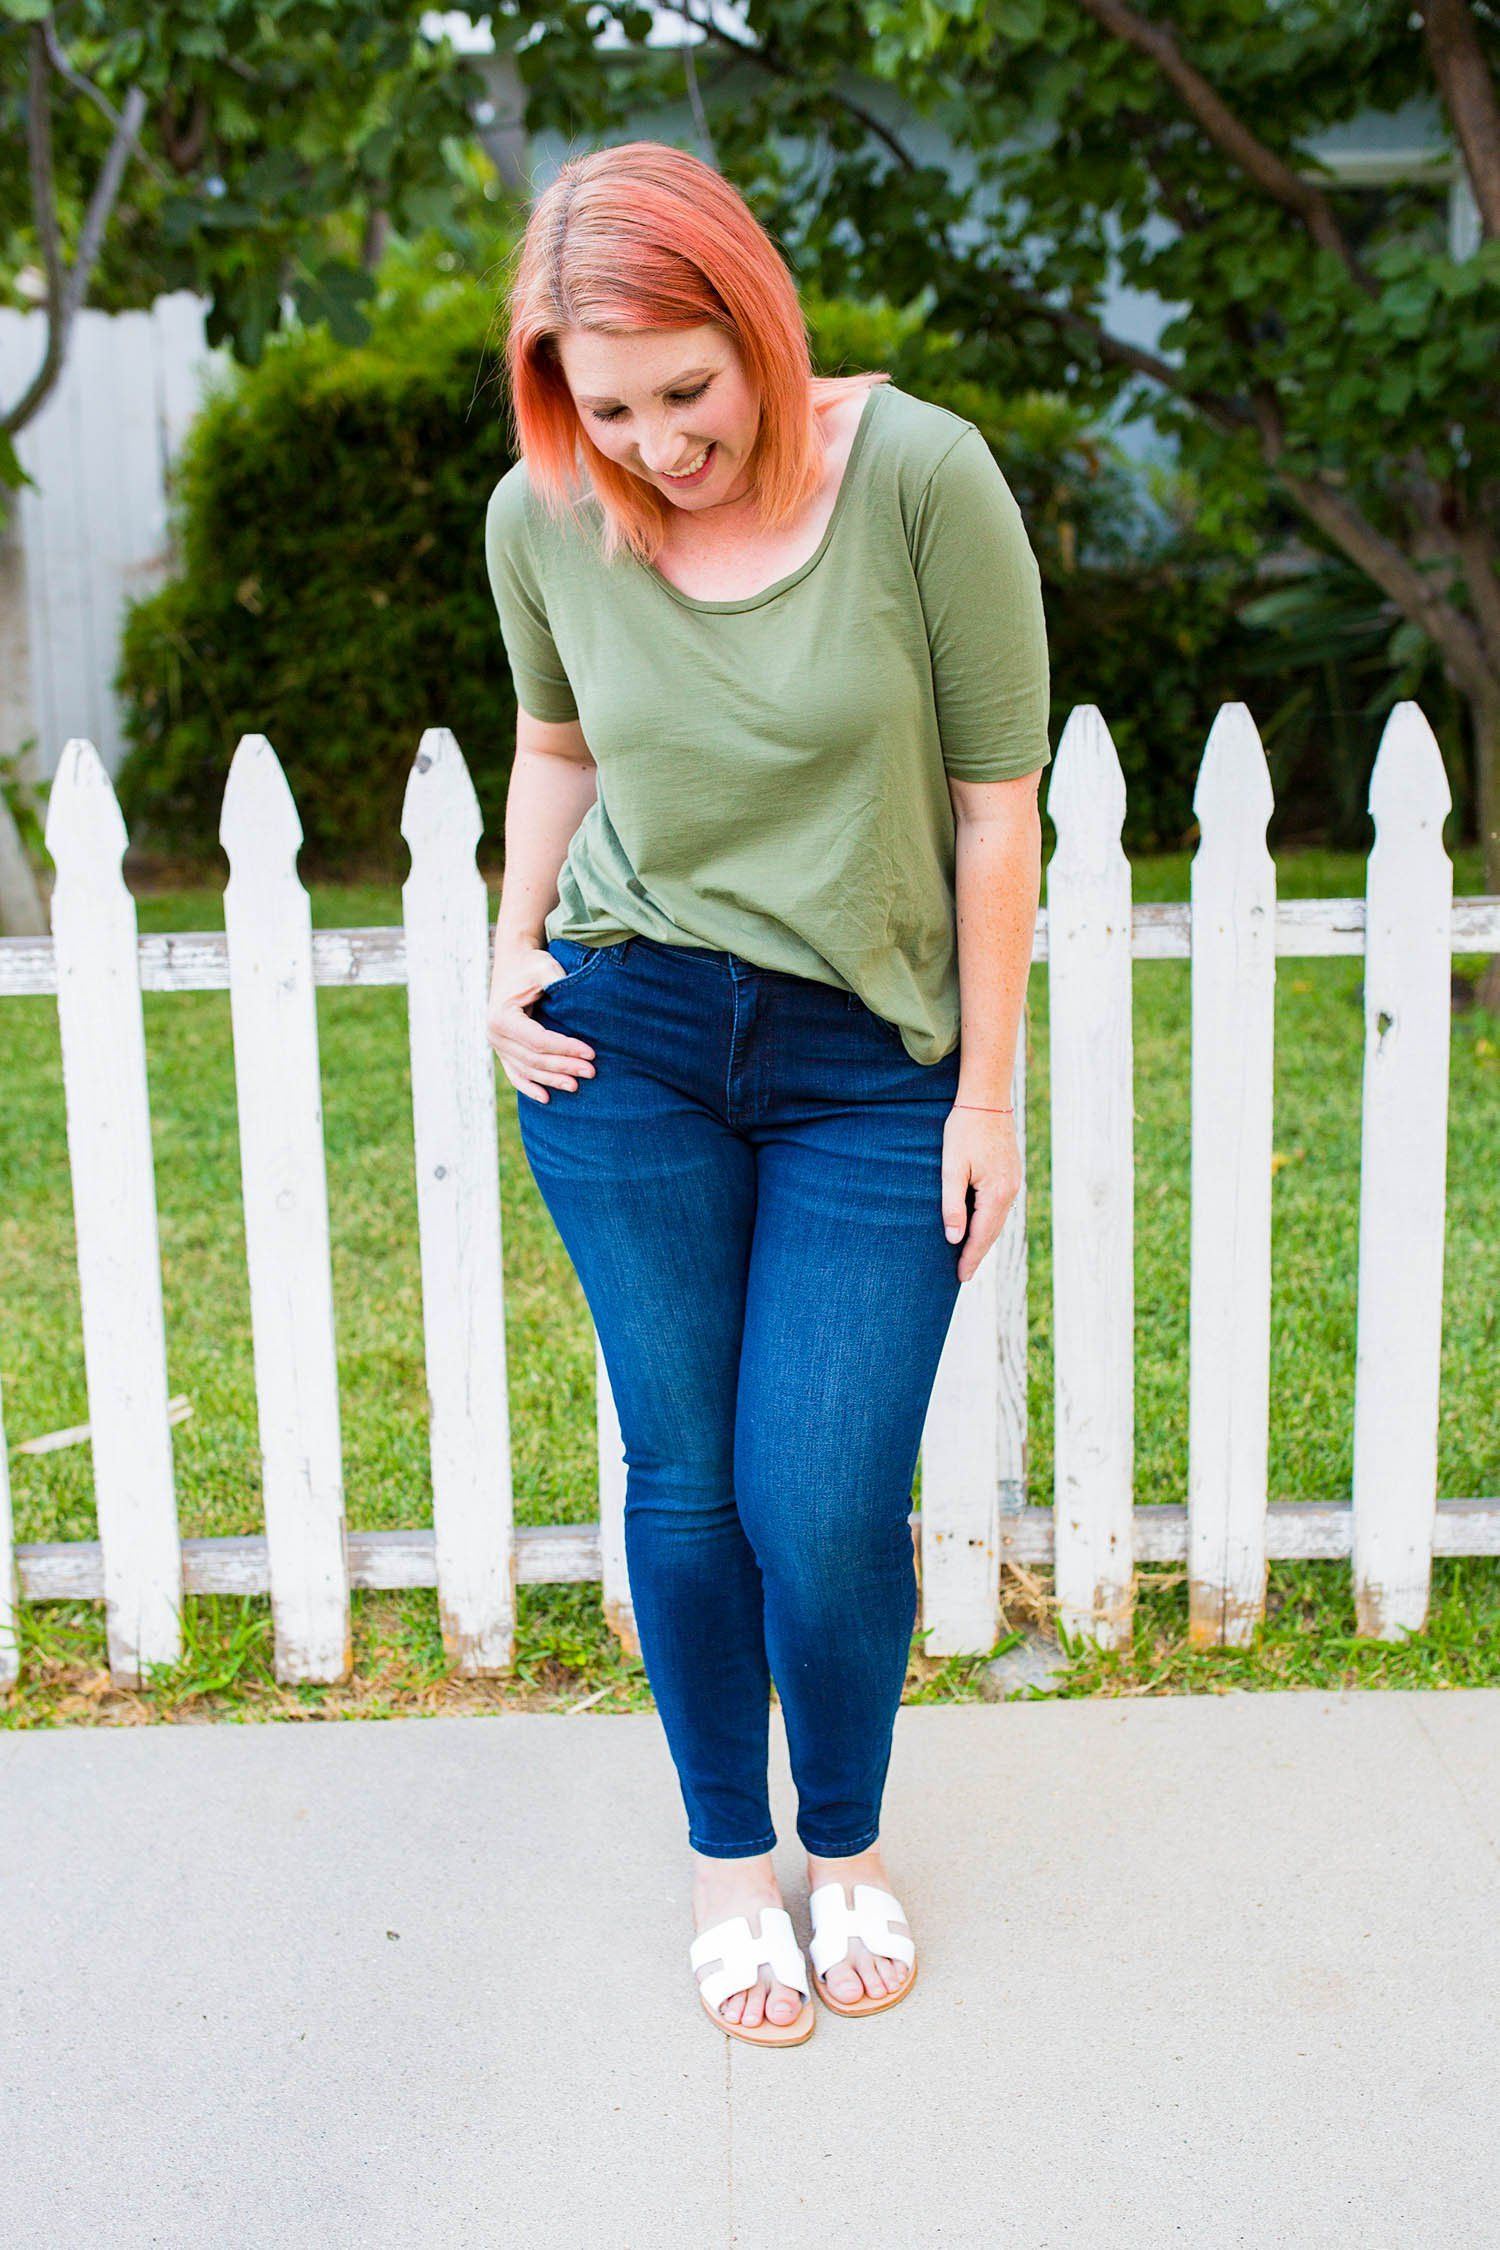 bfaed205a4a8 If you're on the hunt for basic dark blue jeans for a pear shaped body,  these are PERFECTION!